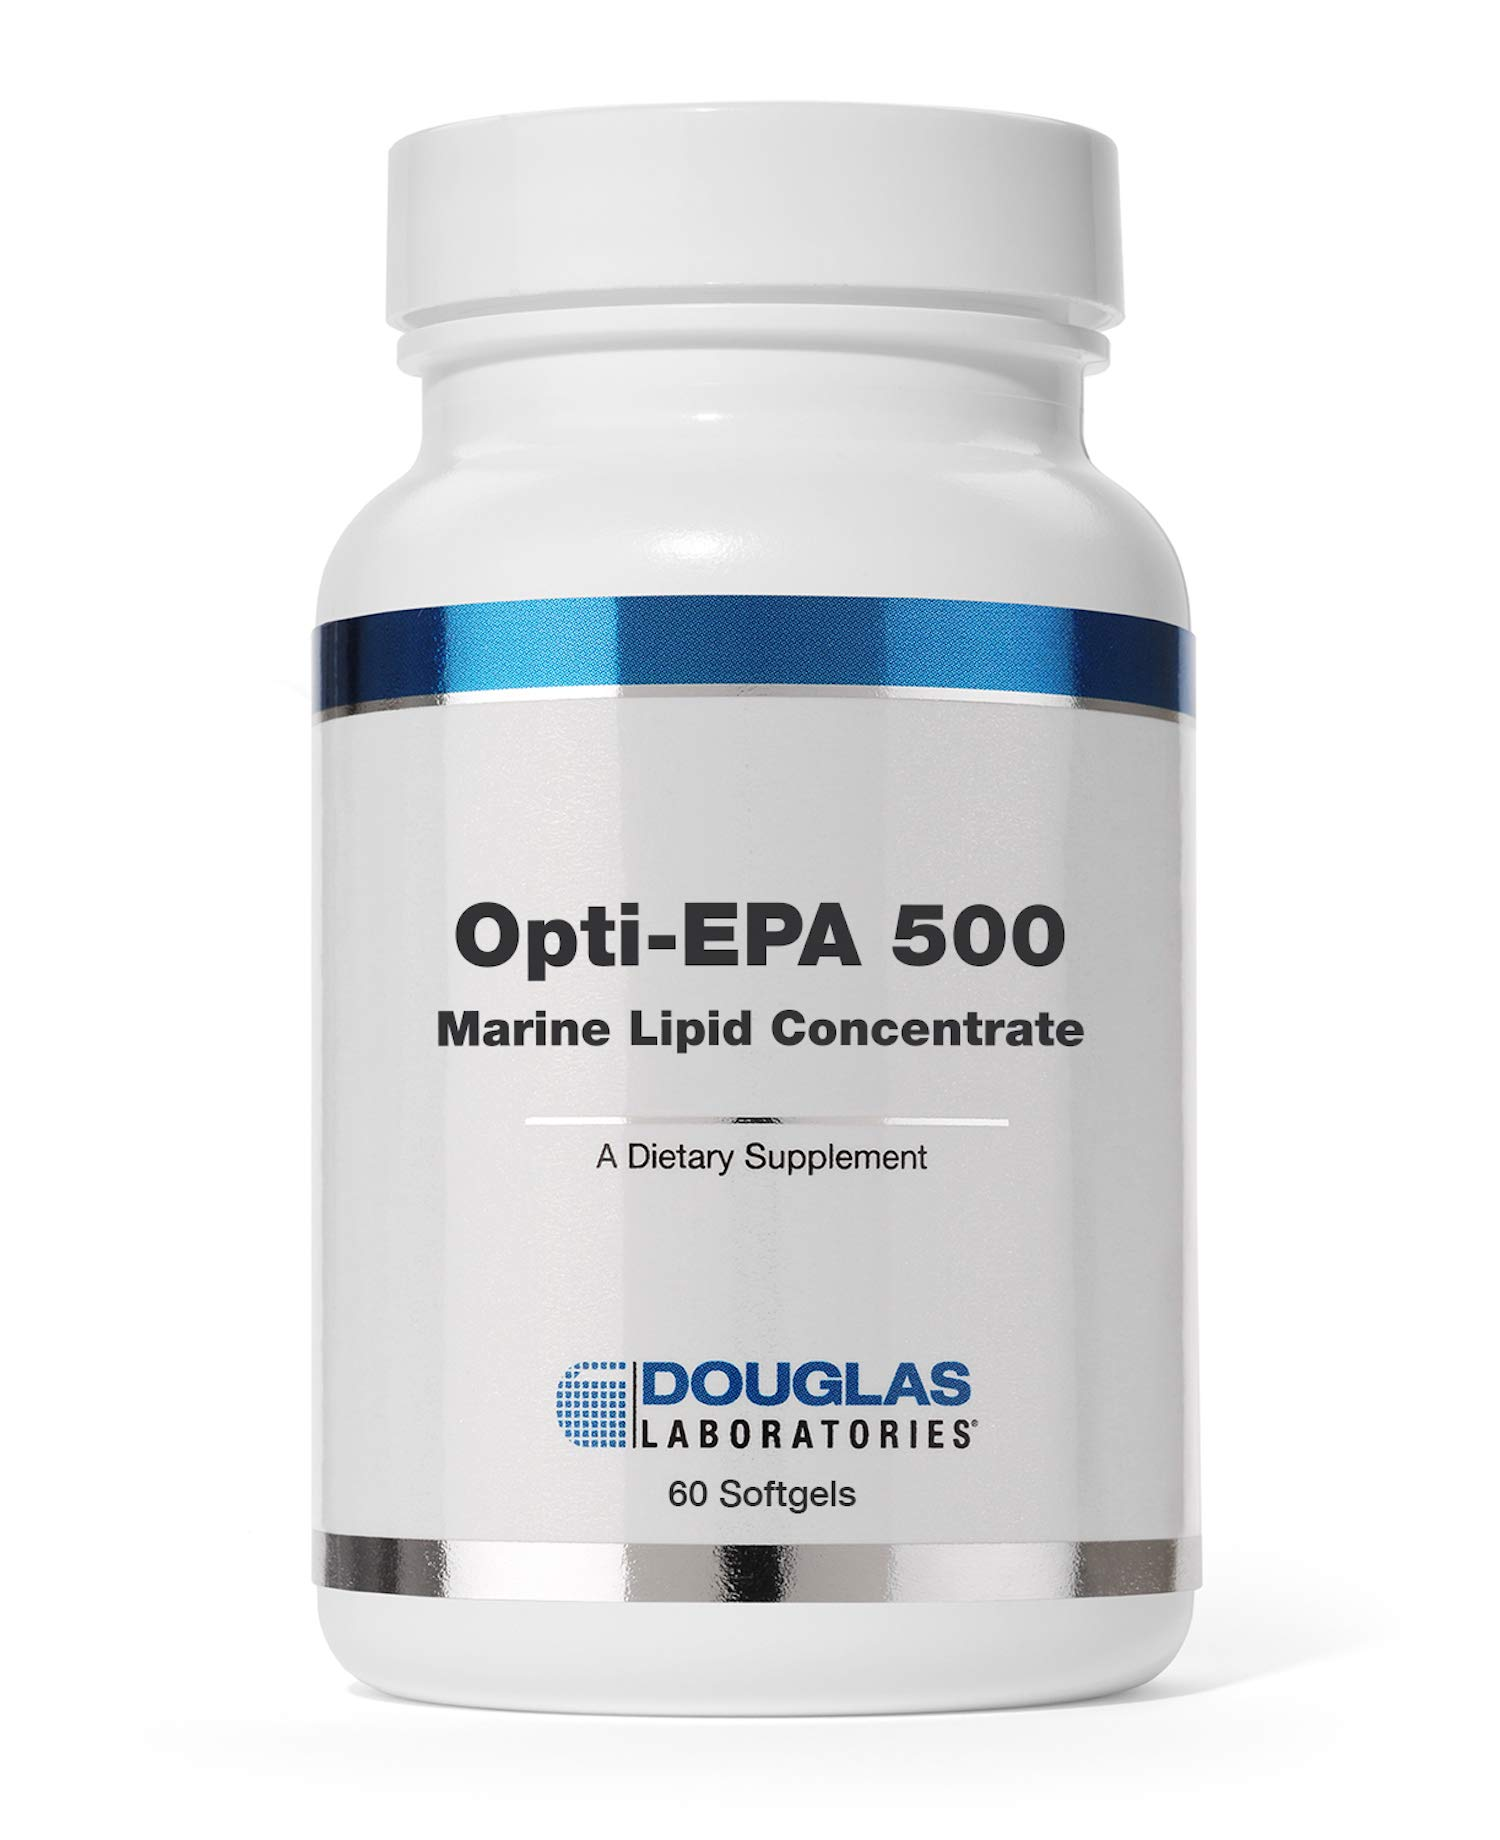 Douglas Laboratories - Opti-EPA 500 (Marine Lipid Concentrate) - Supports Brain, Eyes, Pregnancy and Cardiovascular Health* - 60 Softgels by Douglas Laboratories